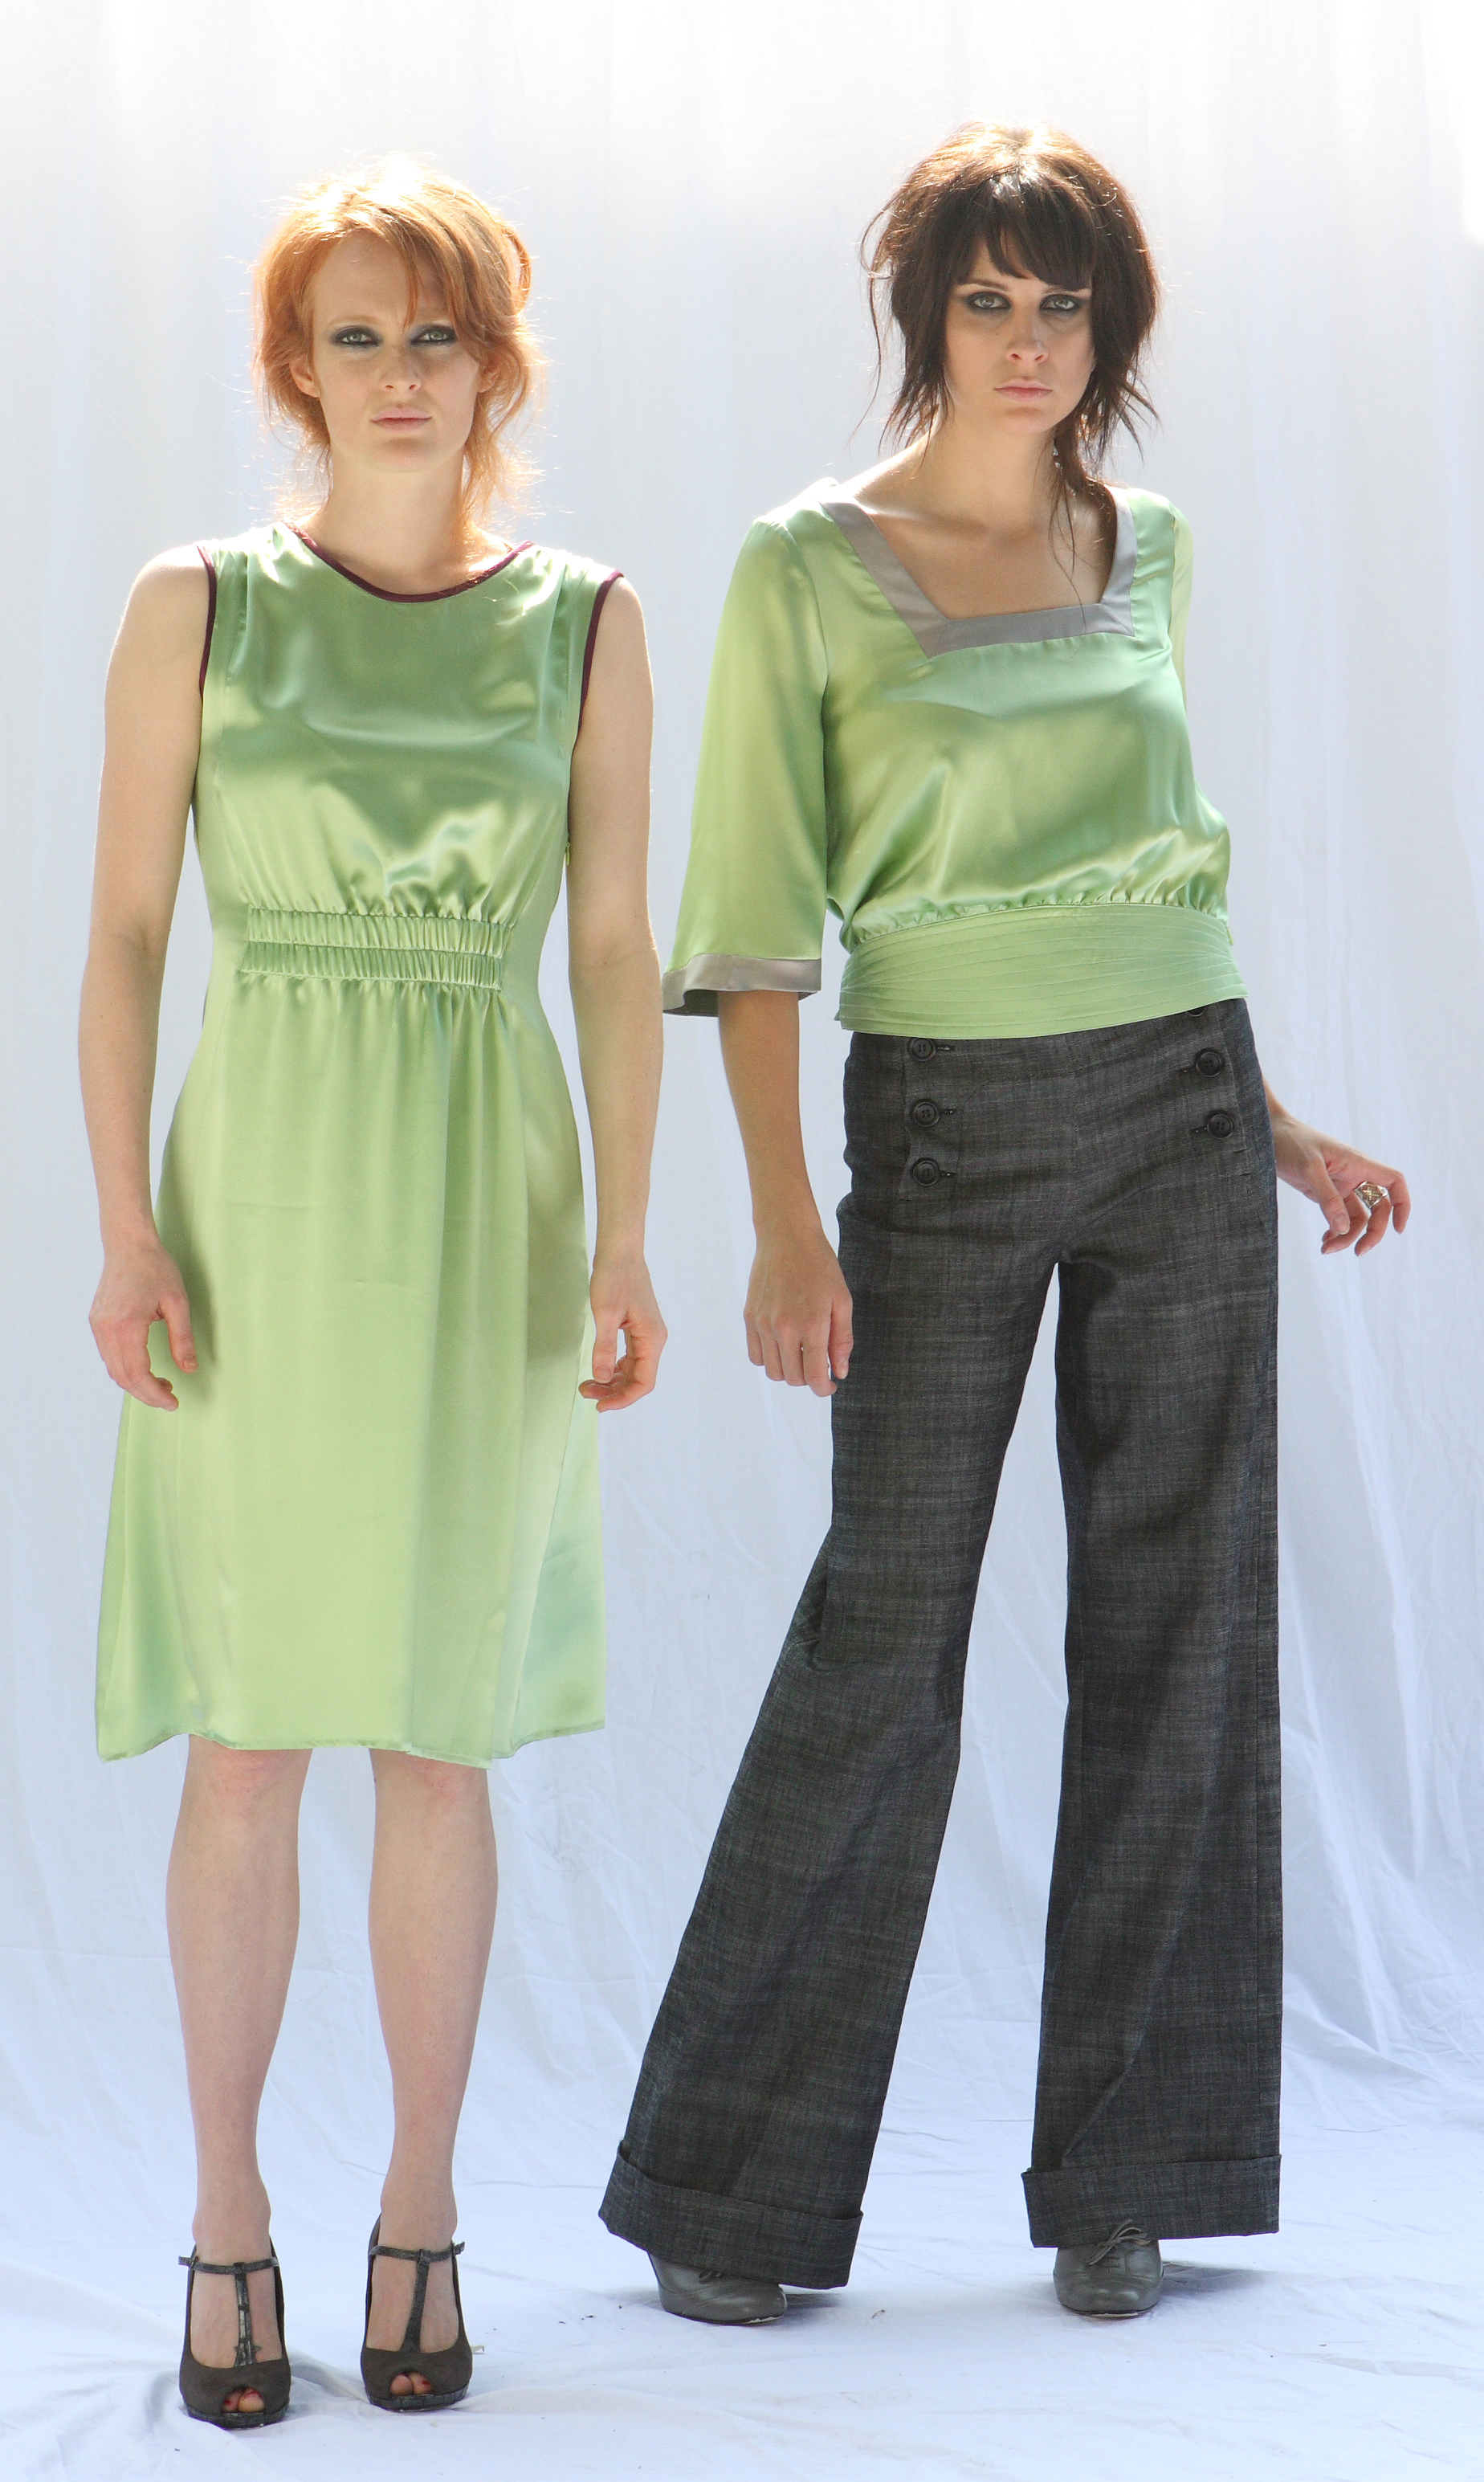 From left to right:   Shirred Waist Sheath Dress in Lime Silk Charmeuse  Quilt Waist Square Neck Blouse in Lime Silk Charmeuse   Cuffed Wide Leg Sailor Pant in Italian Charcoal Stretch Denim